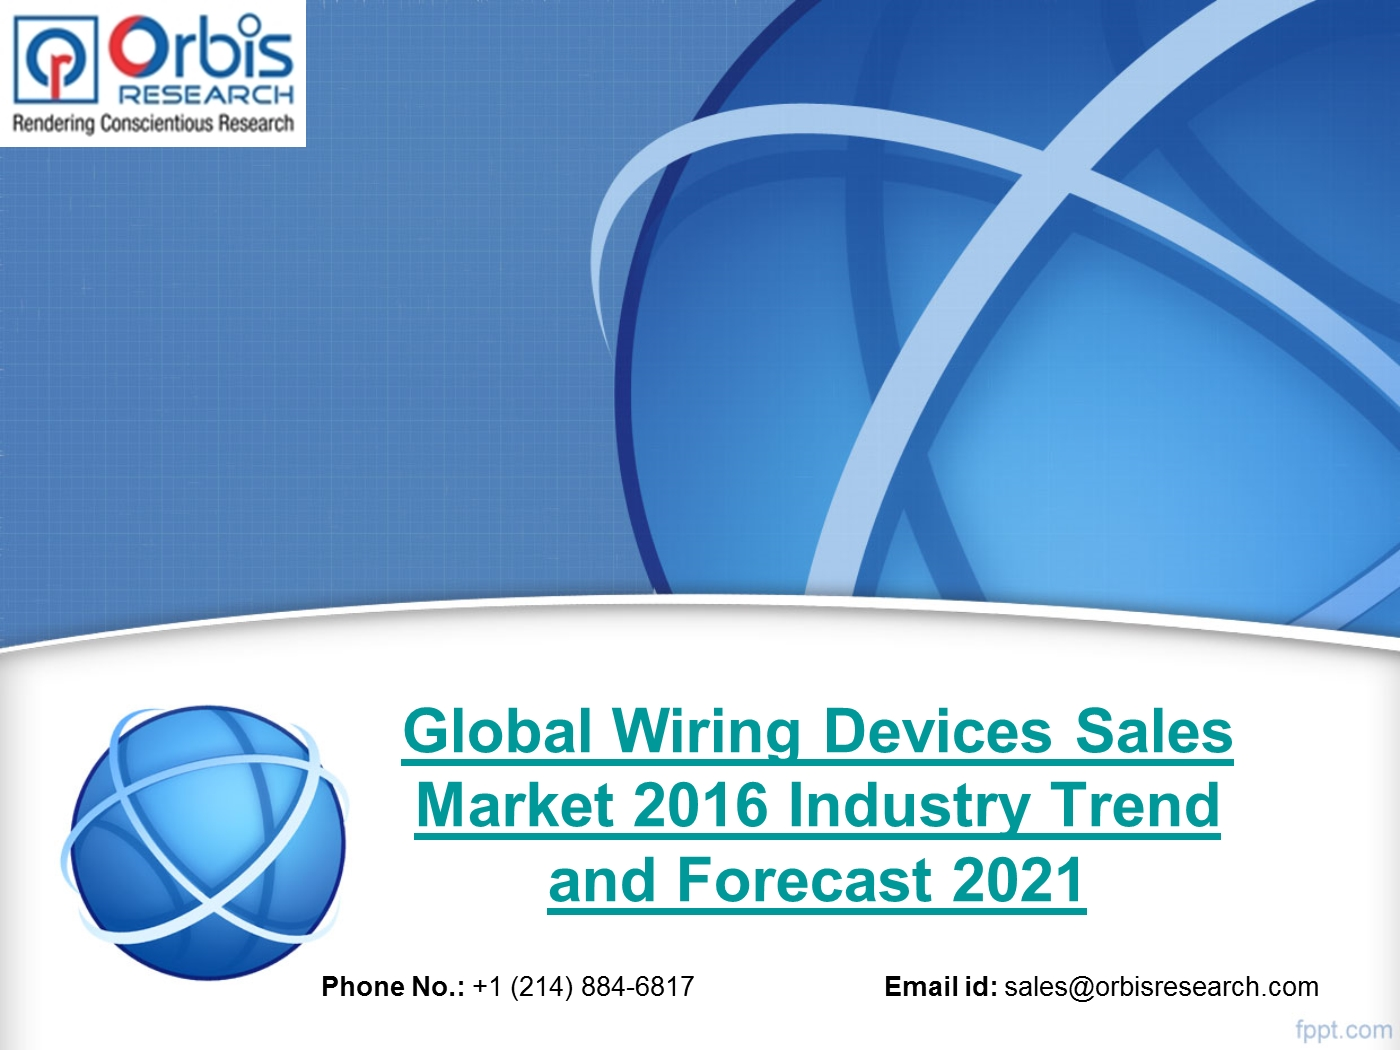 global wiring devices sales industry 2016 revenue market share rh slideonline com Leviton Wiring Devices Cooper Wiring Devices